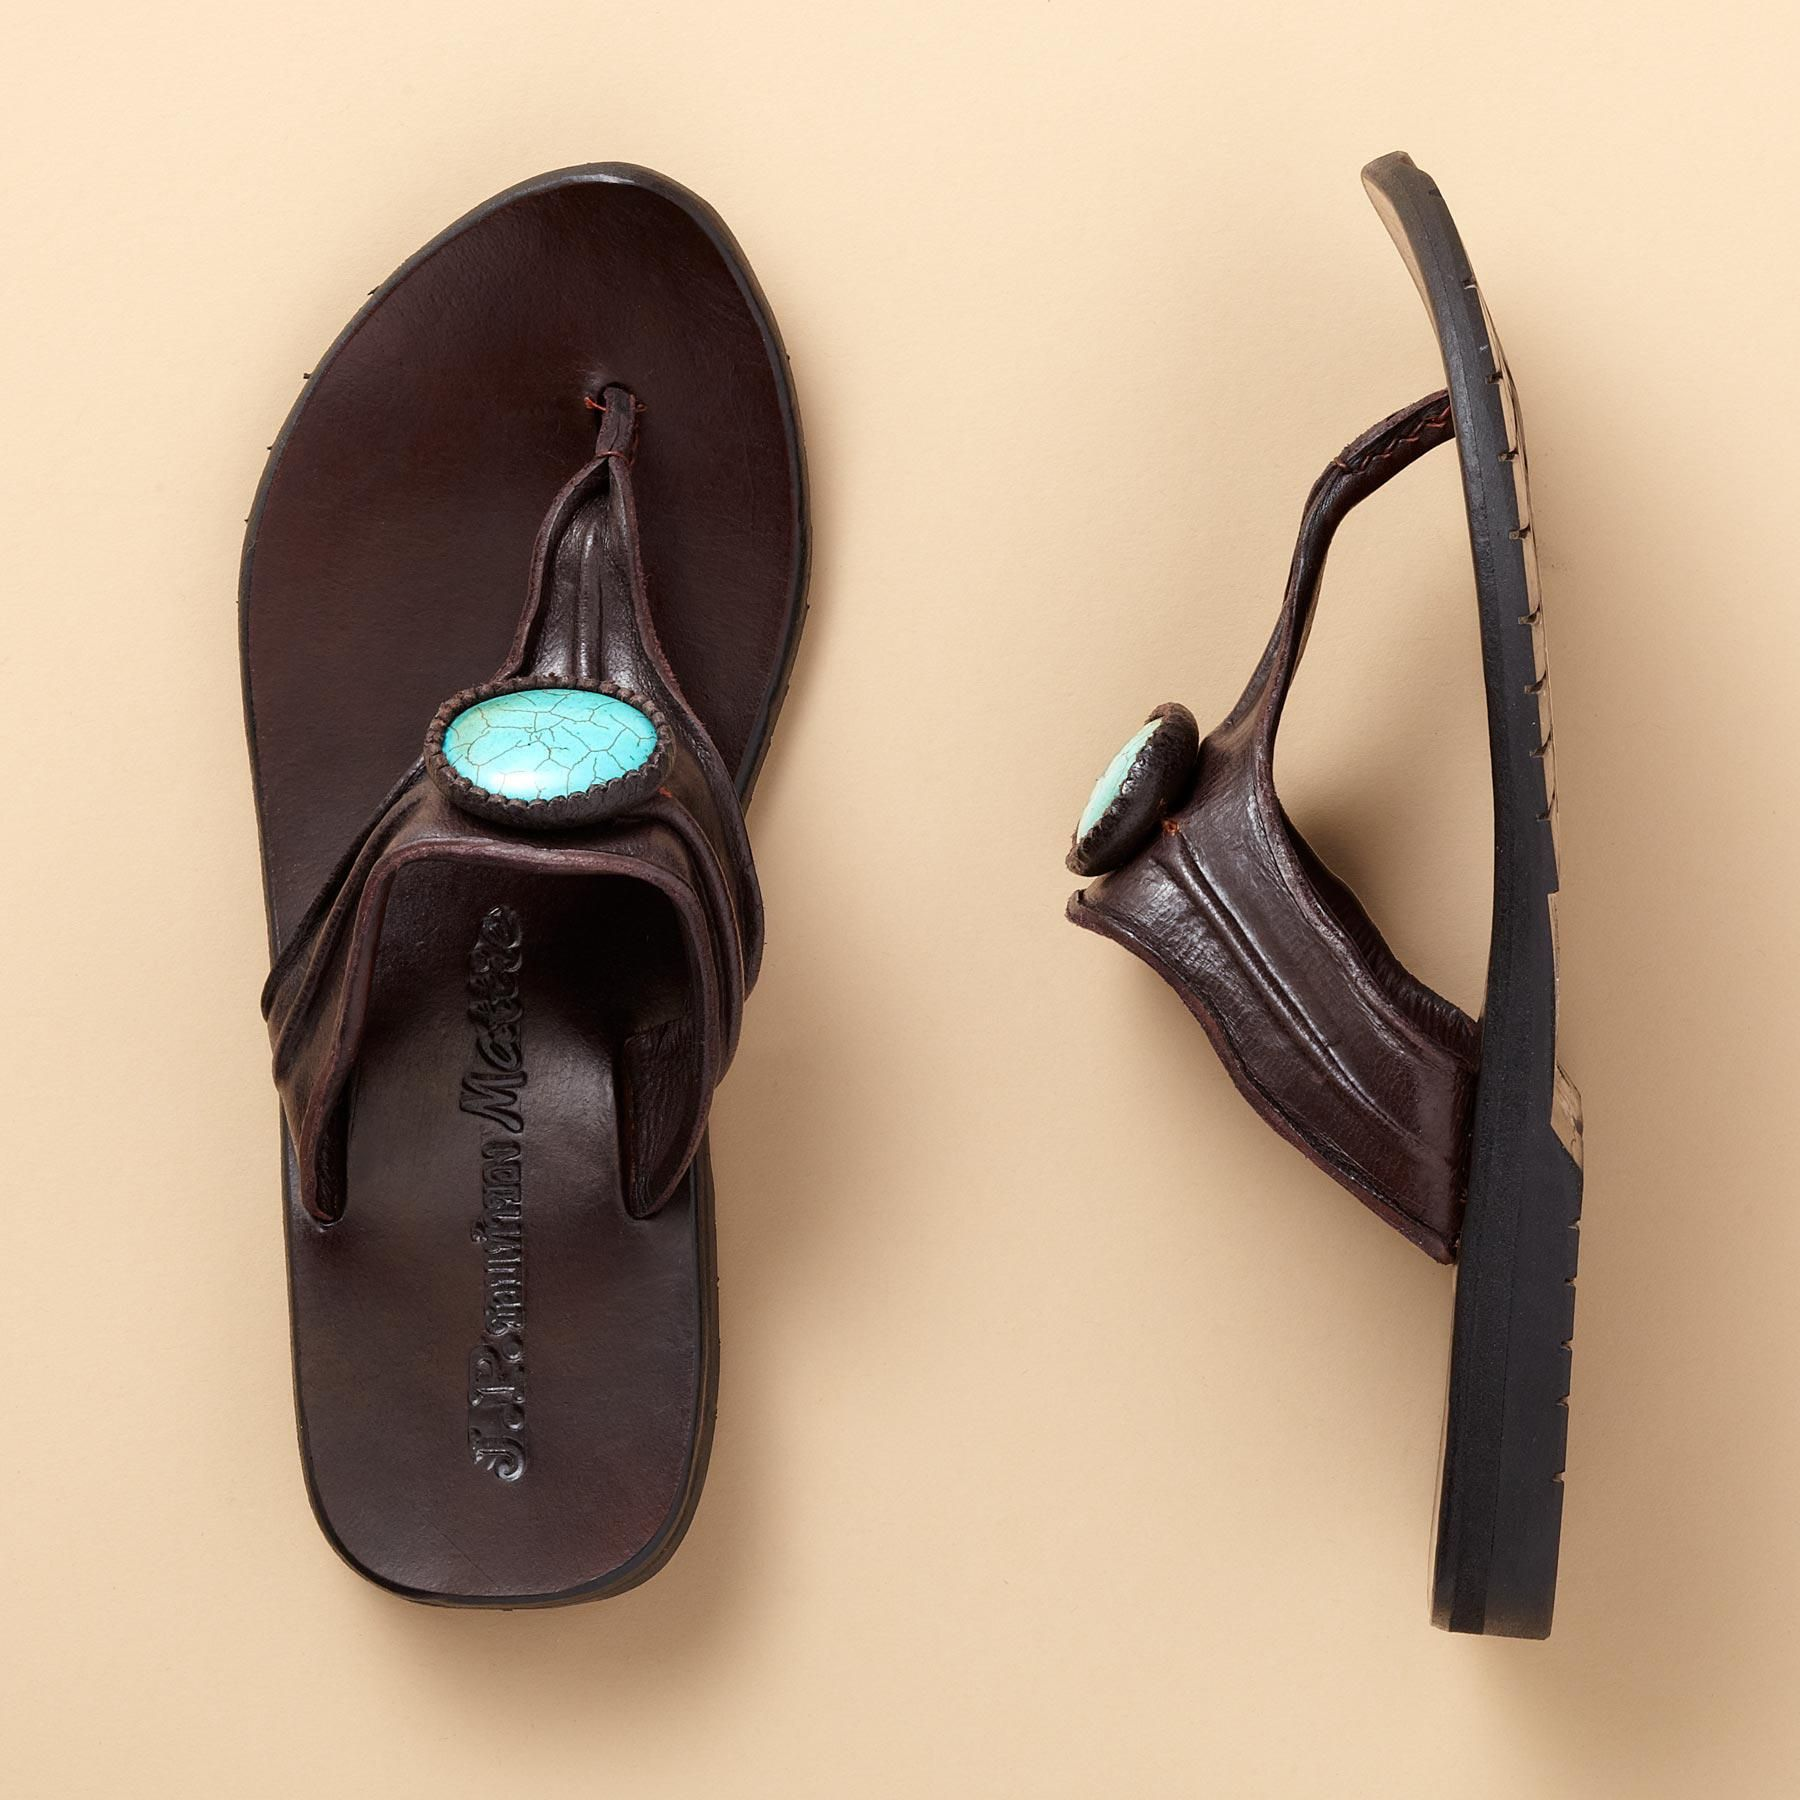 super popular 01a3b 660e3 NADIA SANDALS -- Crafted in Thai villages, buffalo leather sandals are  rustically stunning and sturdy, crowned with a turquoise howlite stone.  Rubber sole.